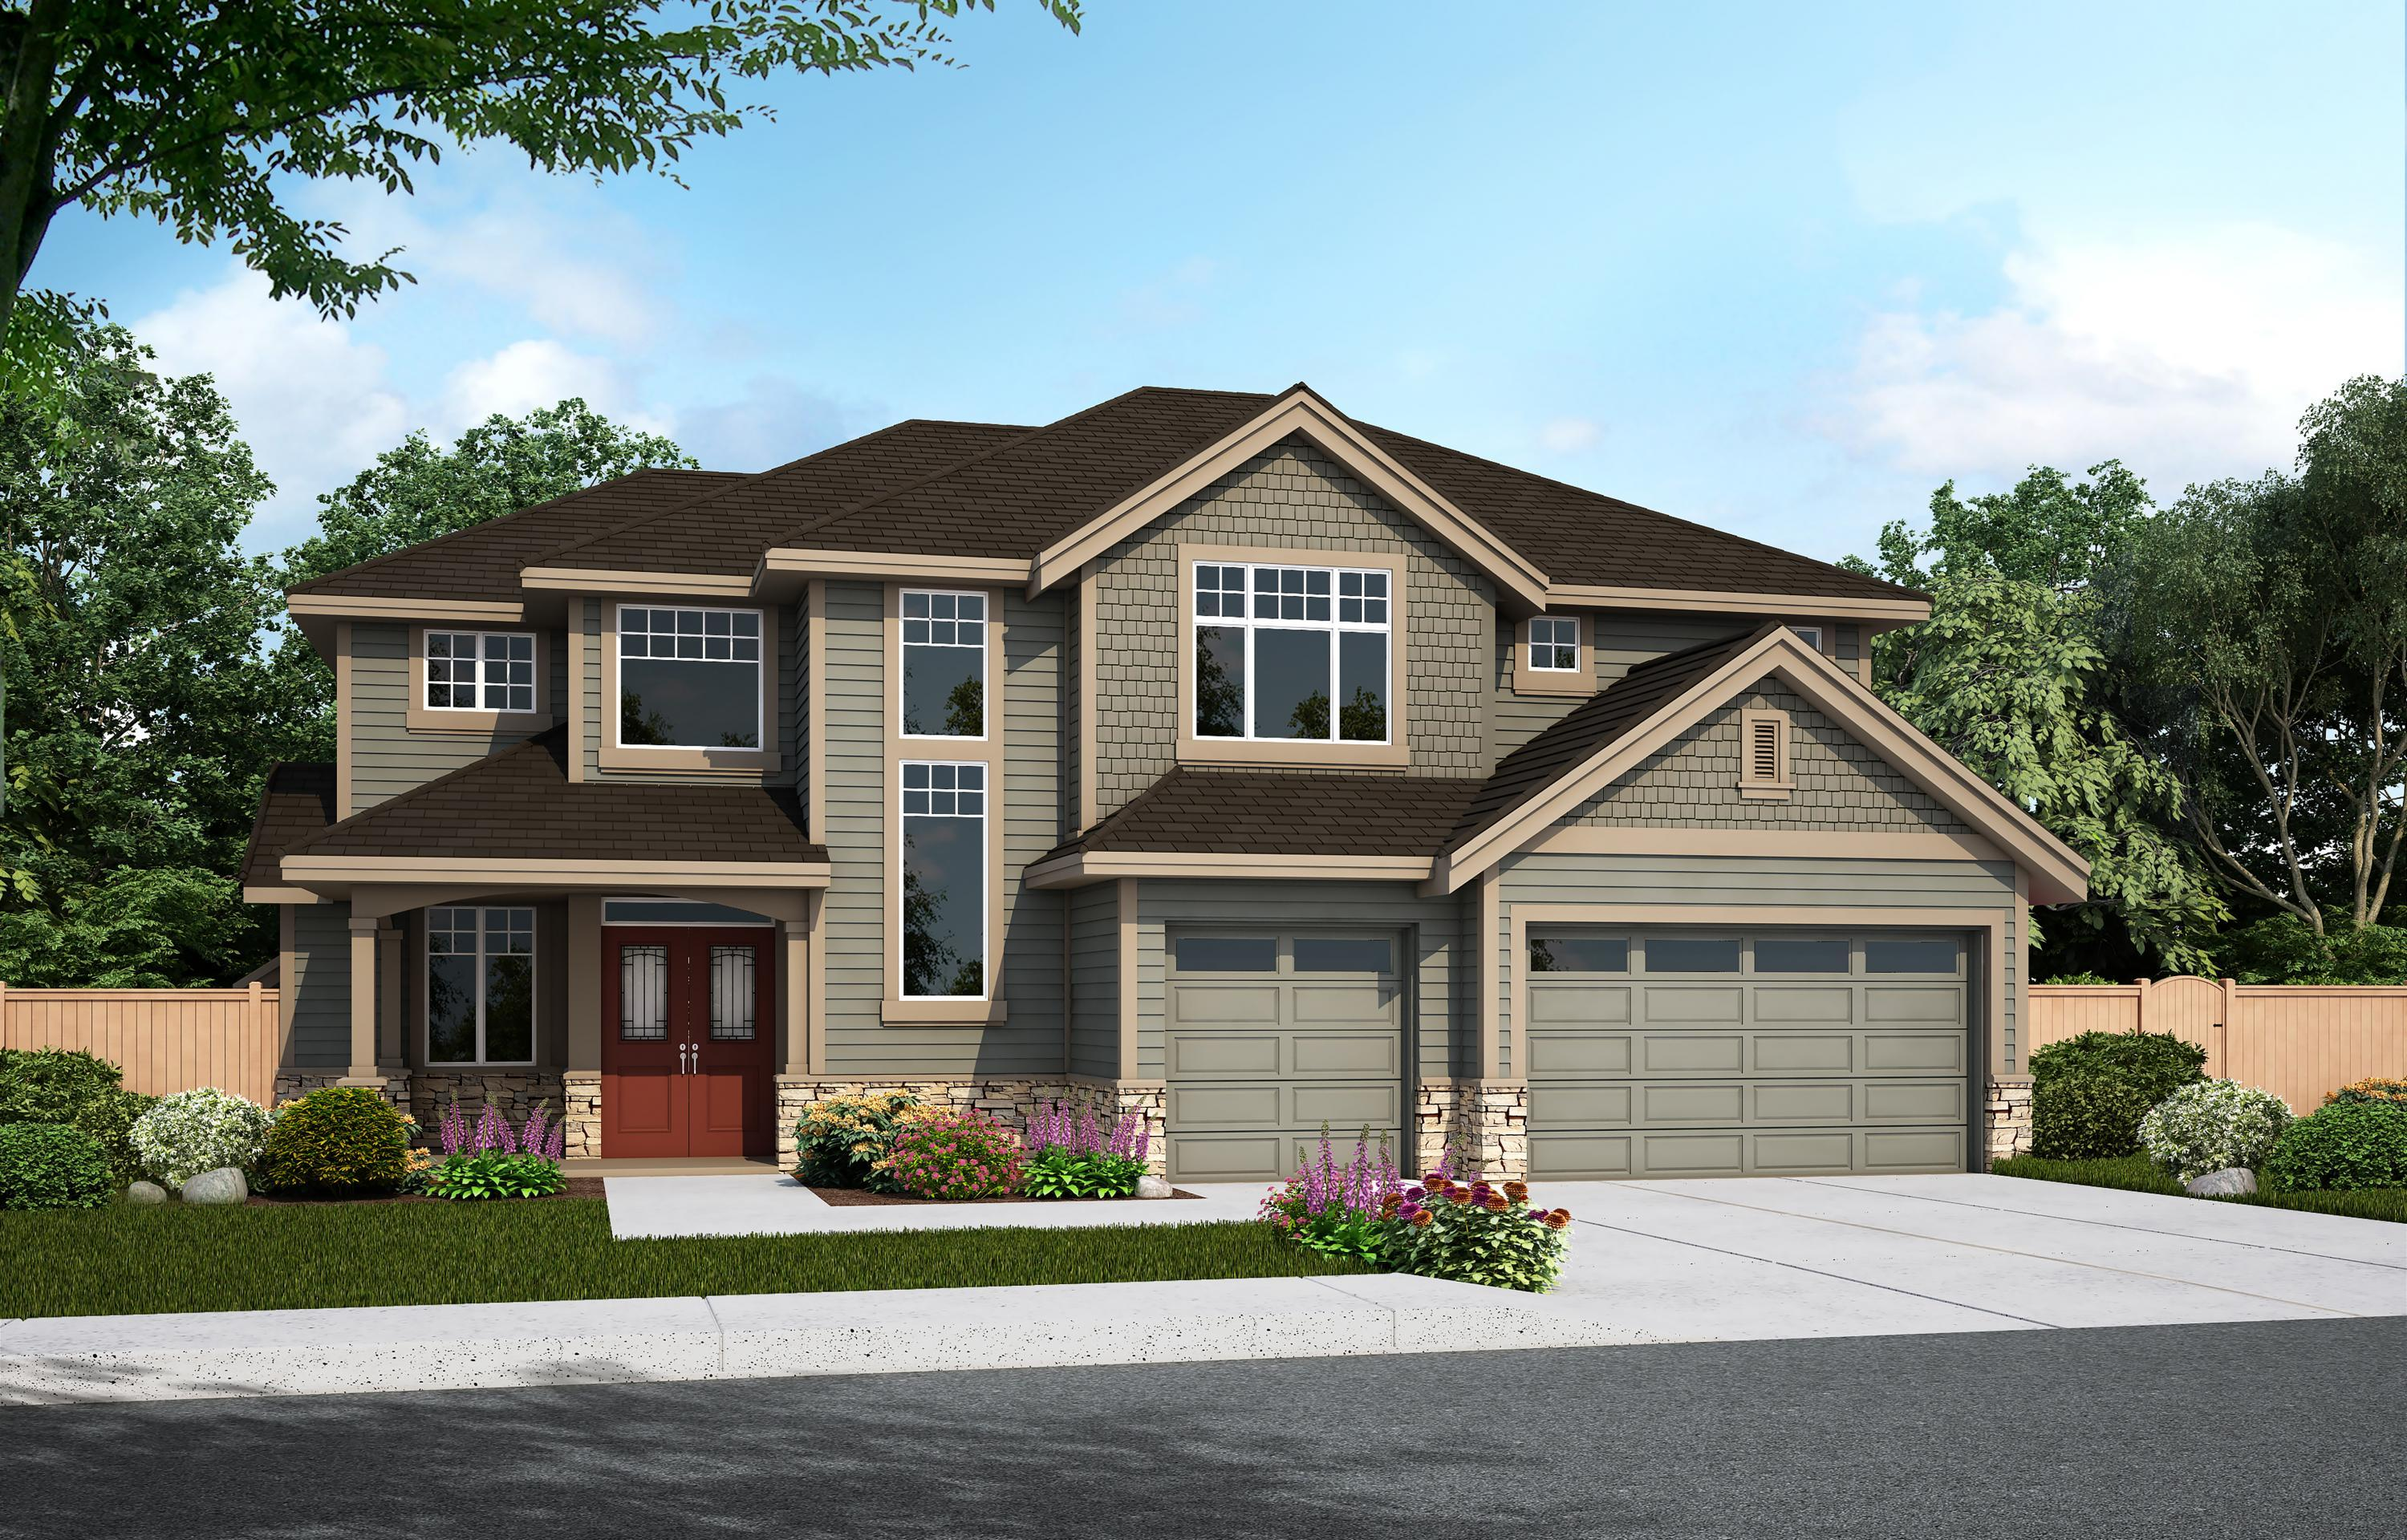 Issaquah homes for sales sierra sotheby 39 s international for New home builders in pickering